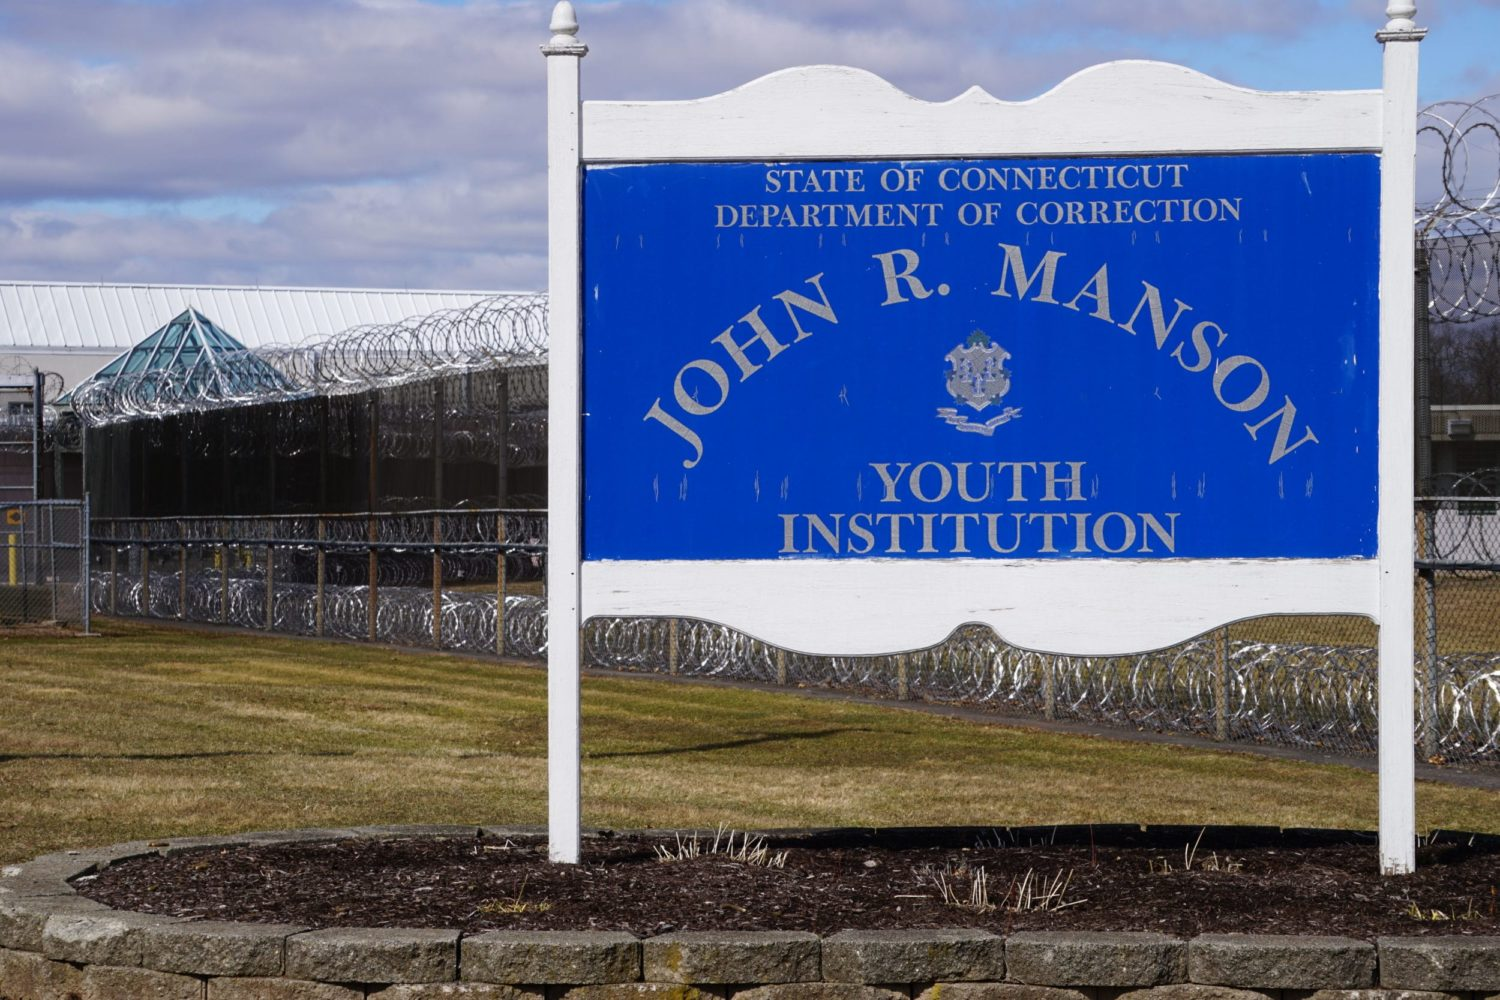 State reaches deal to improve education, mental services for incarcerated youths